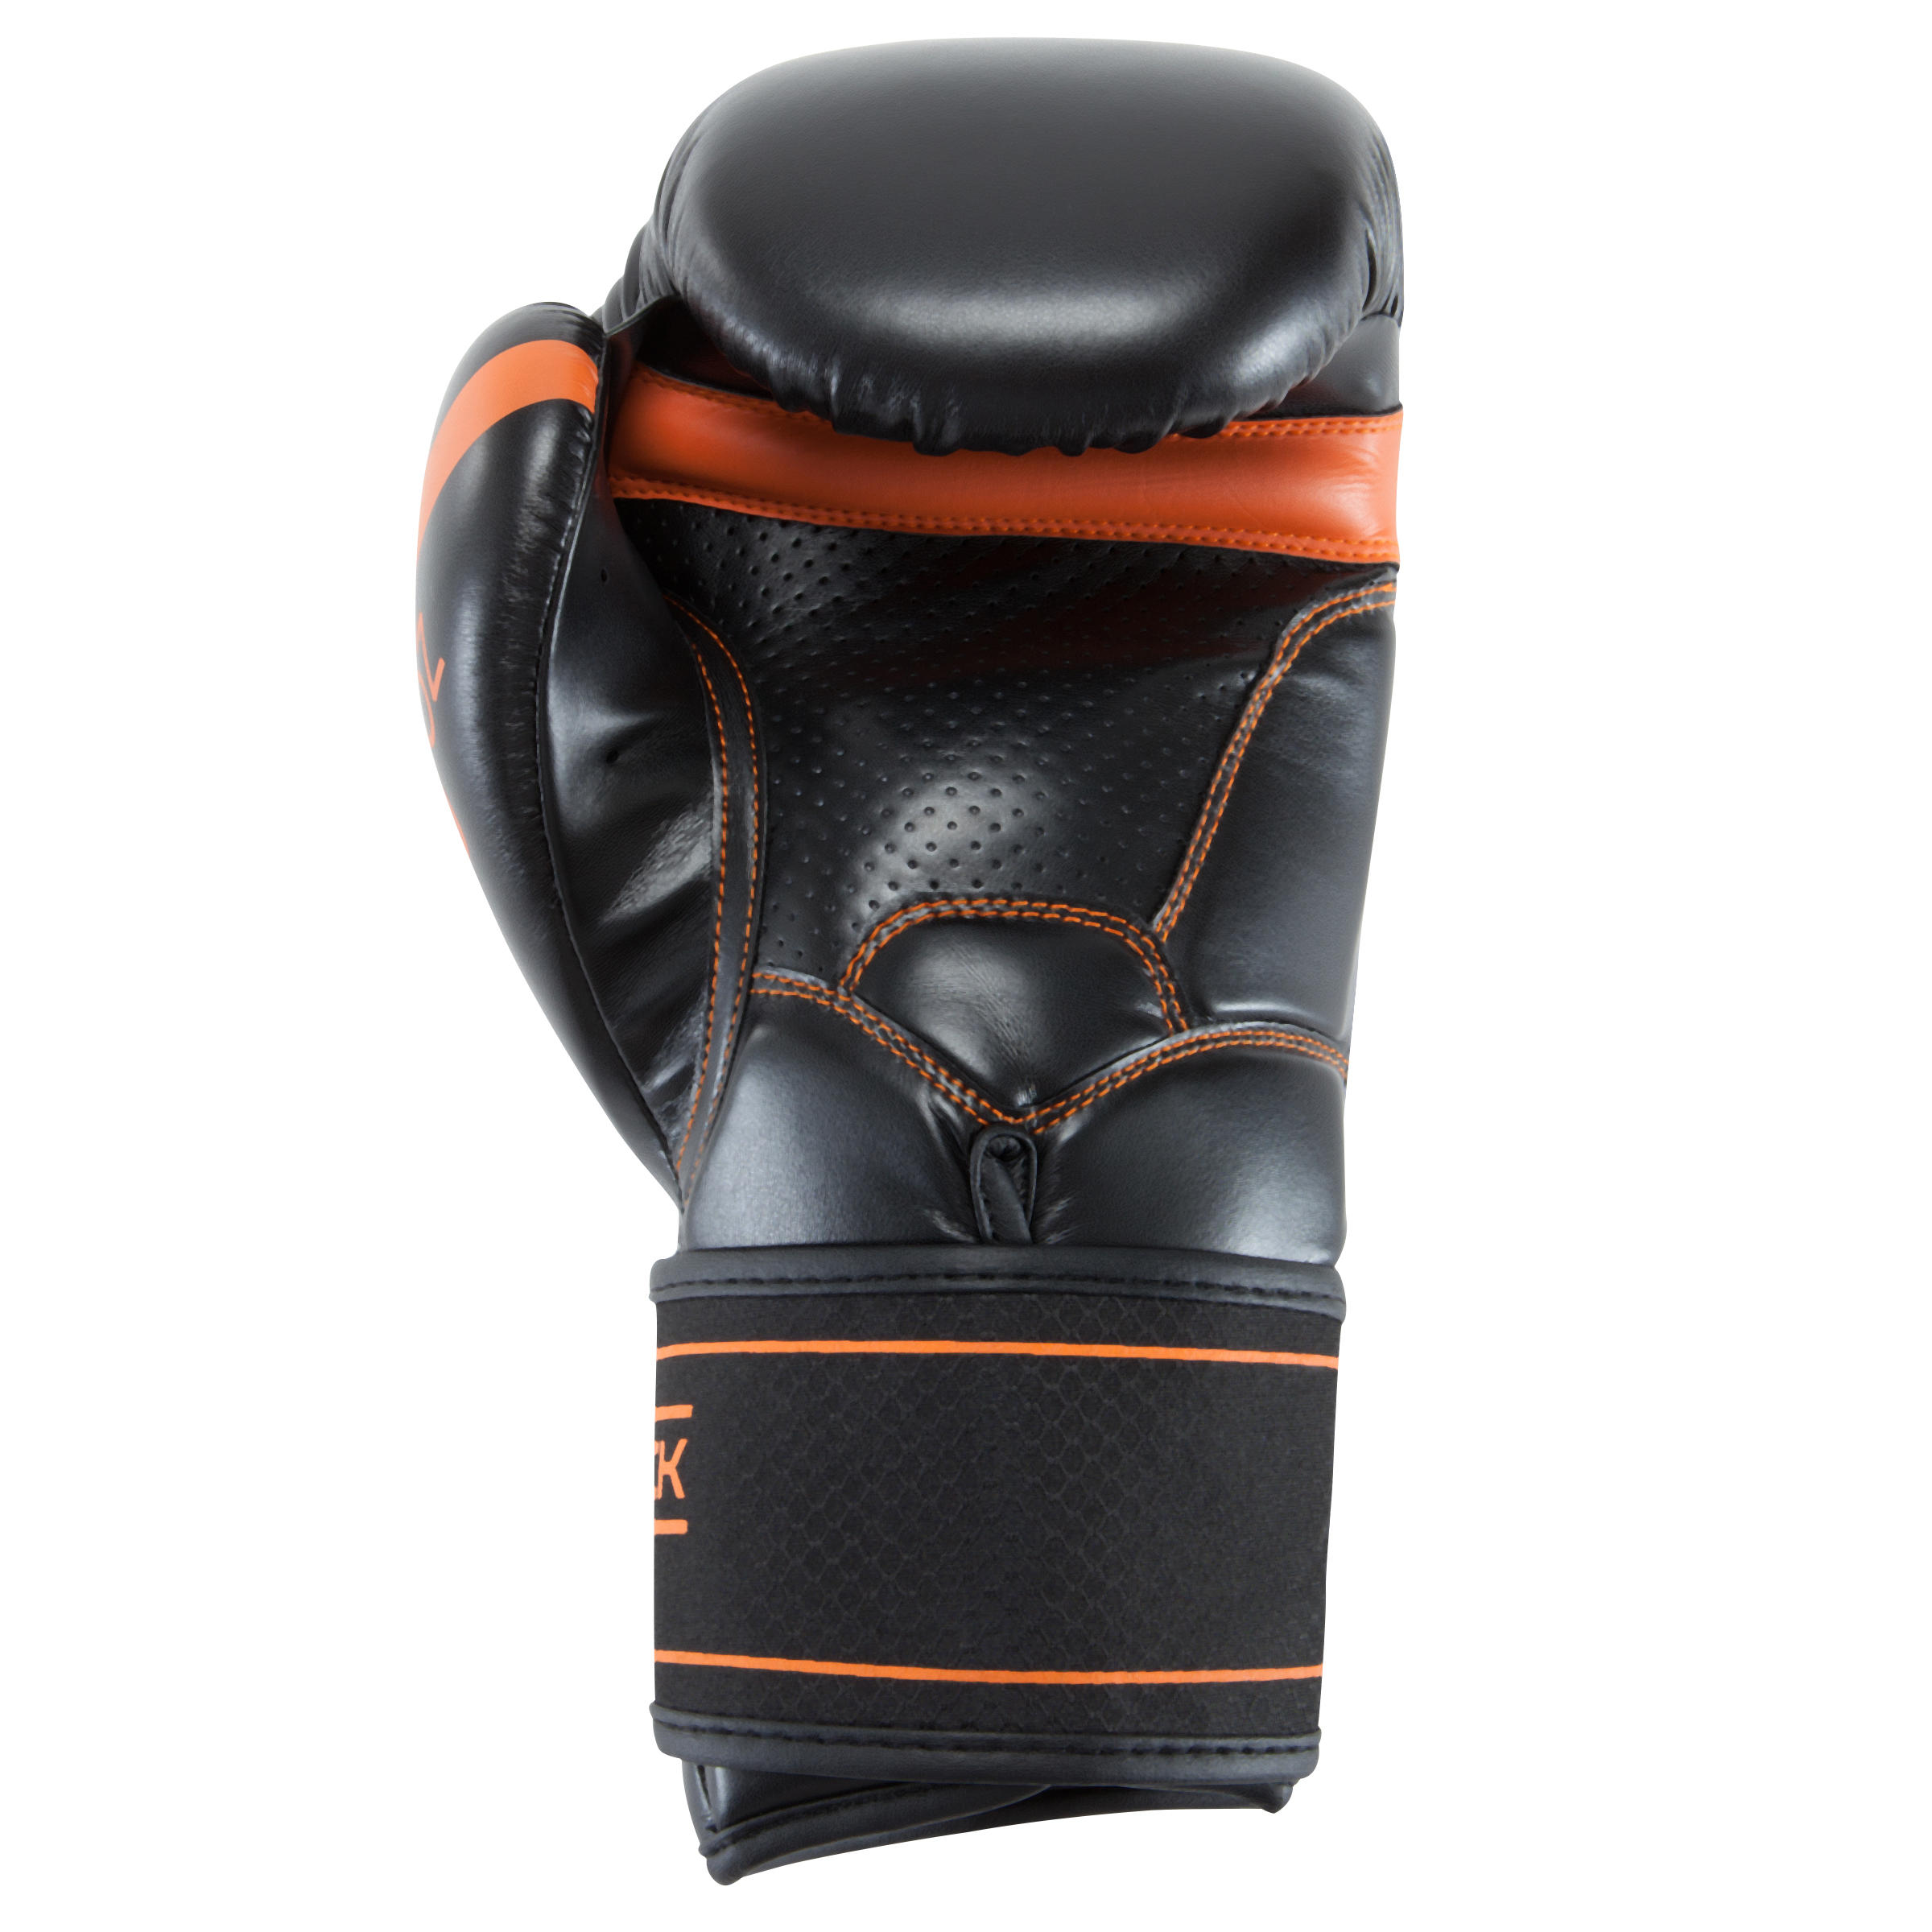 500 Intermediate Adult Boxing Gloves - Black/Orange